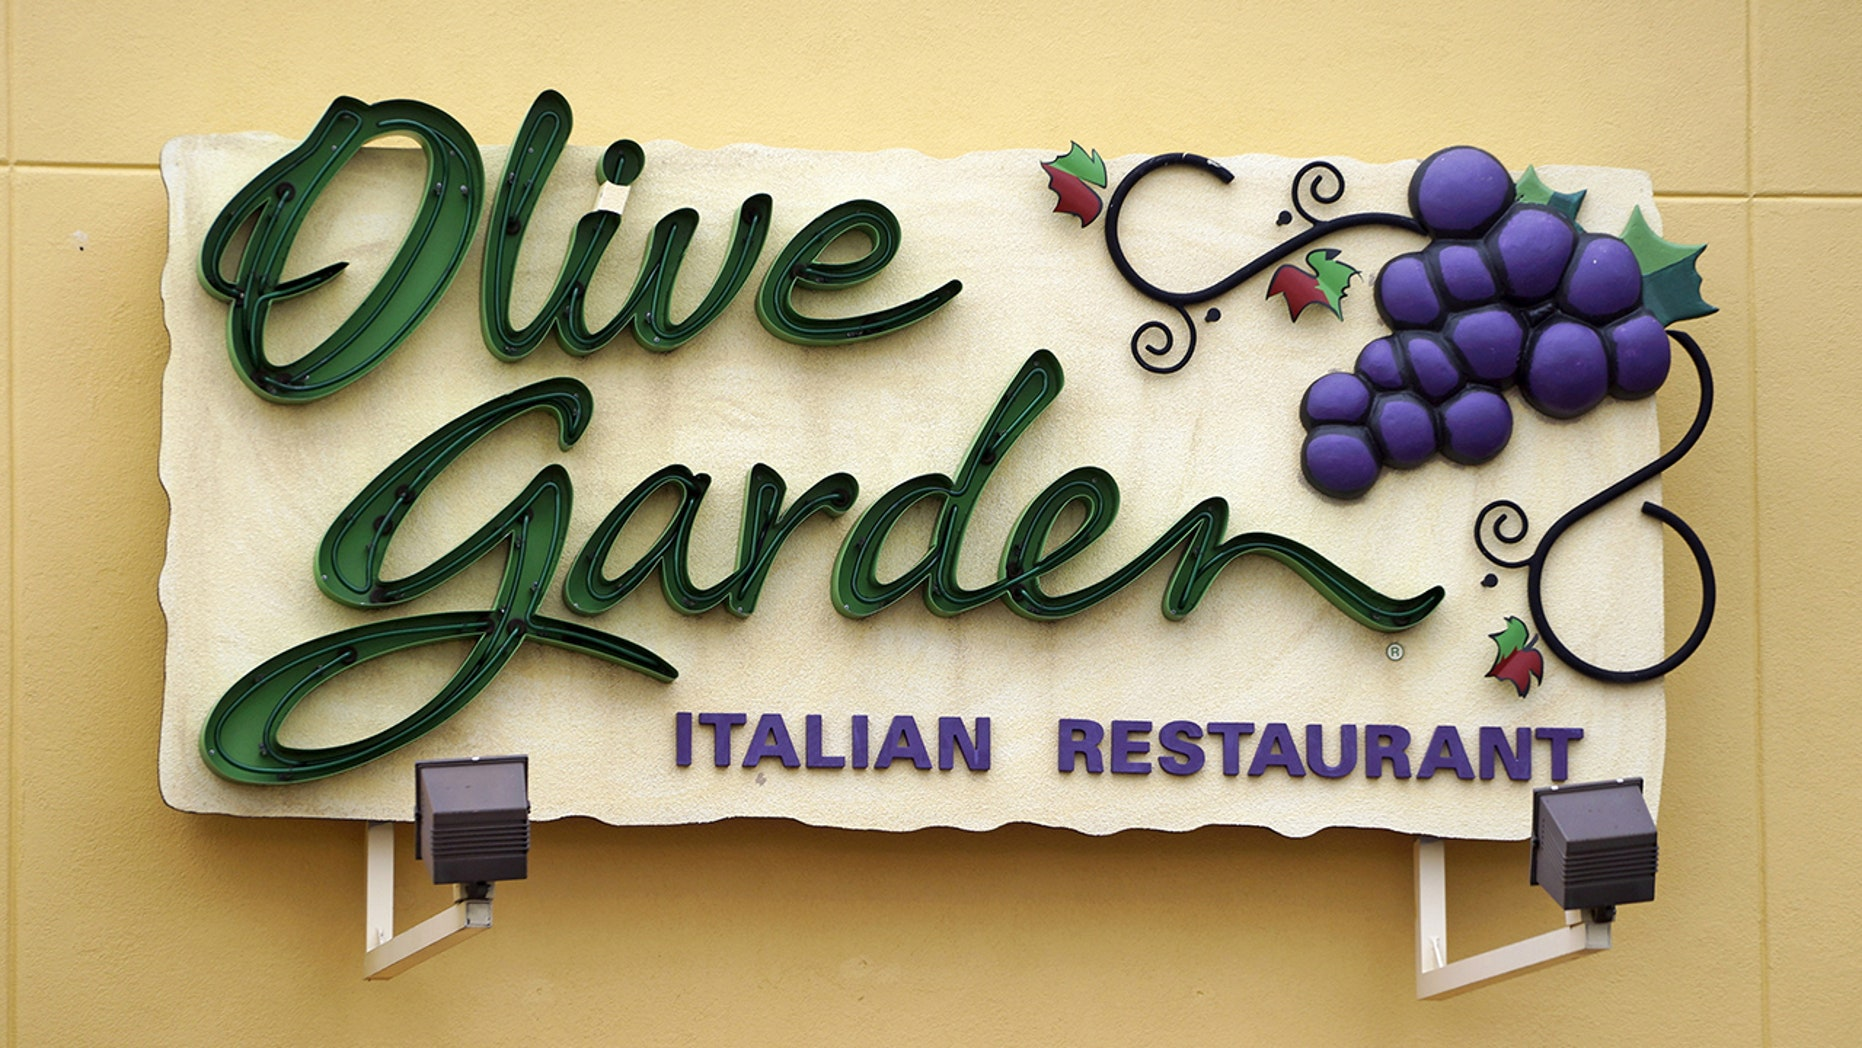 Olive Garden has unveiled their latest -- Loaded pasta chips that come with deep-fried lasagna noodles covered in meat and alfredo sauce.